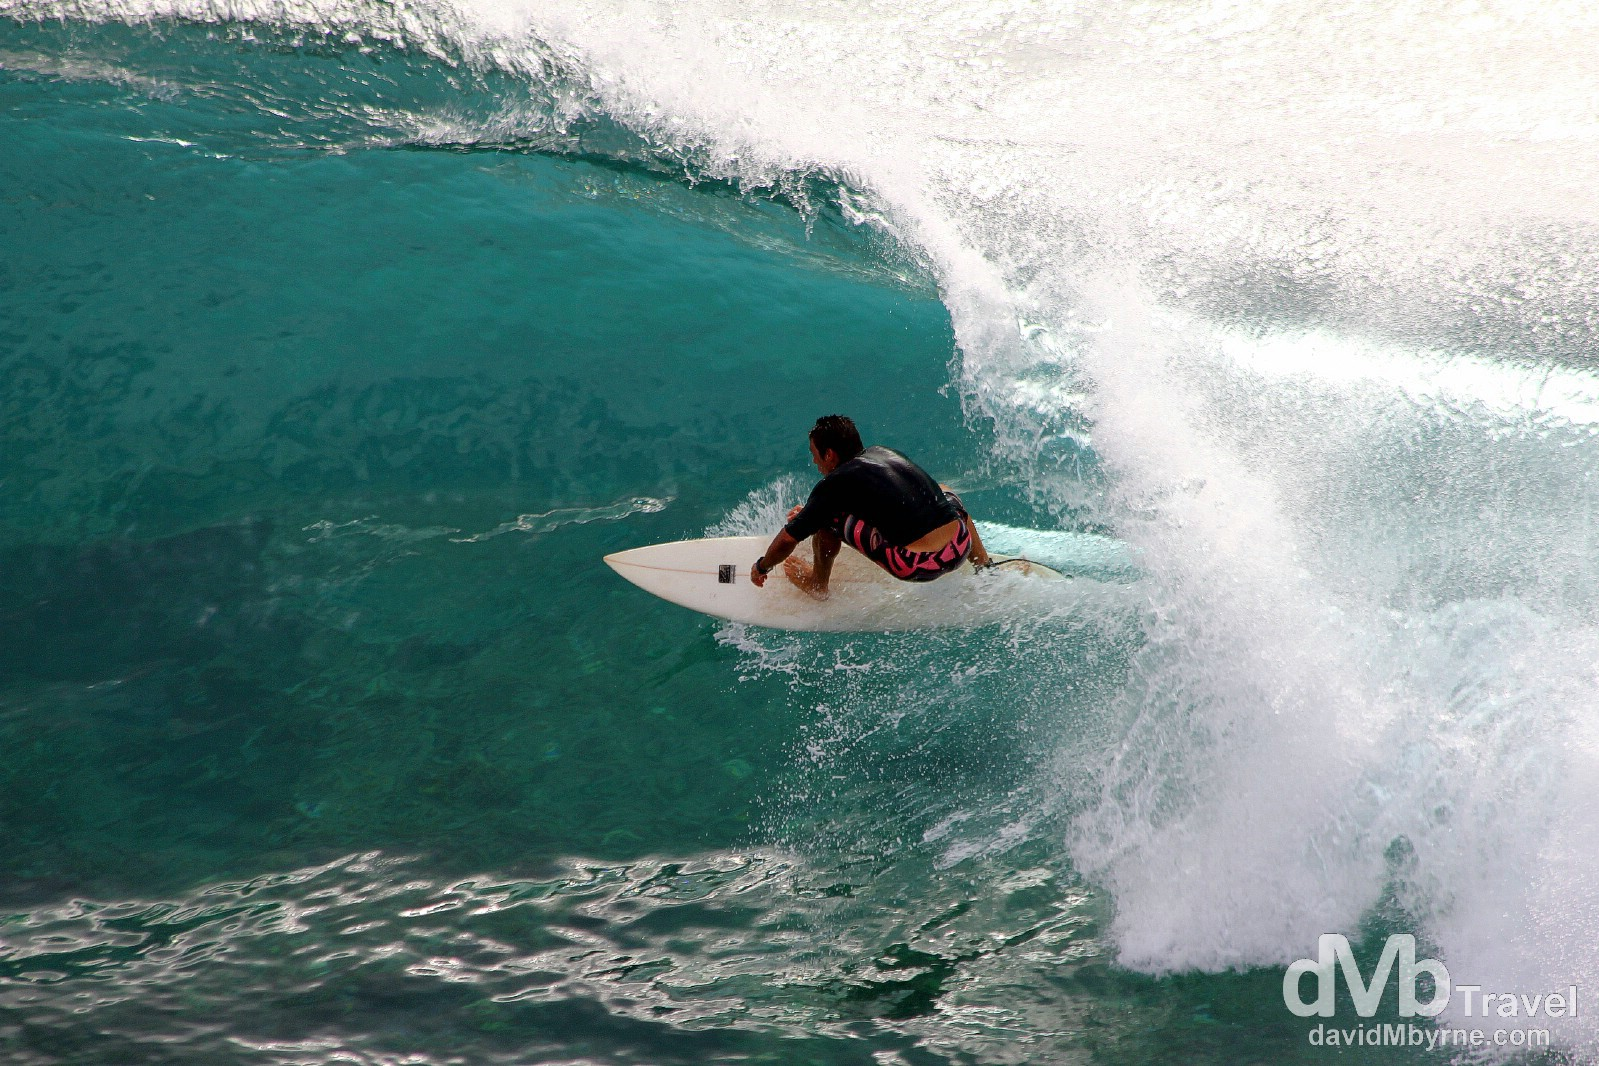 Surfing action in Honolua Bay, Maui, Hawaii, USA. March 4th 2013.